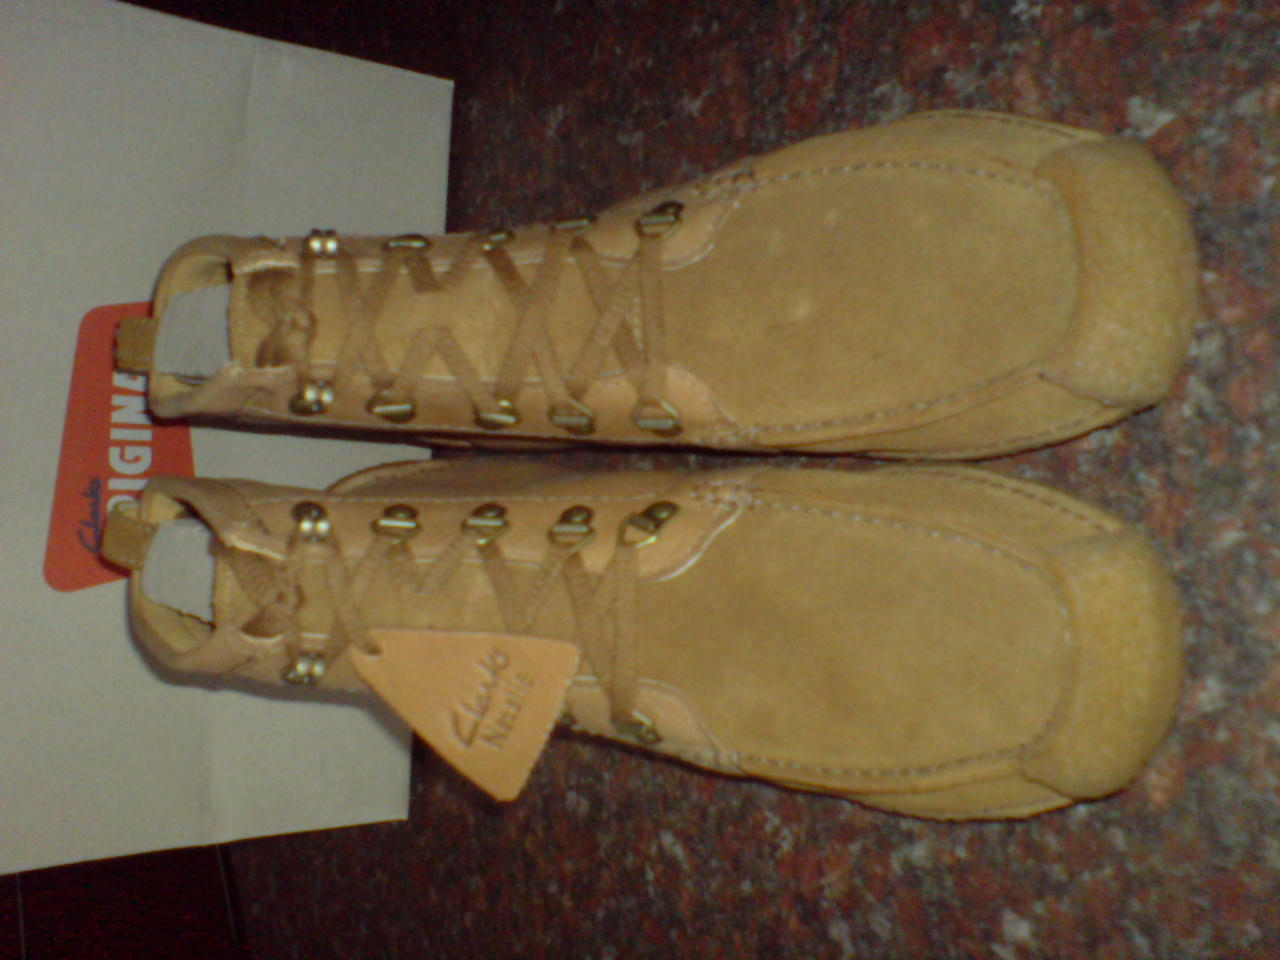 Clarks Originals BOOTS Mens ** WALLABEES NATALIE ** COMBI SAND BOOTS Originals ** UK 8,10,11 b7f241